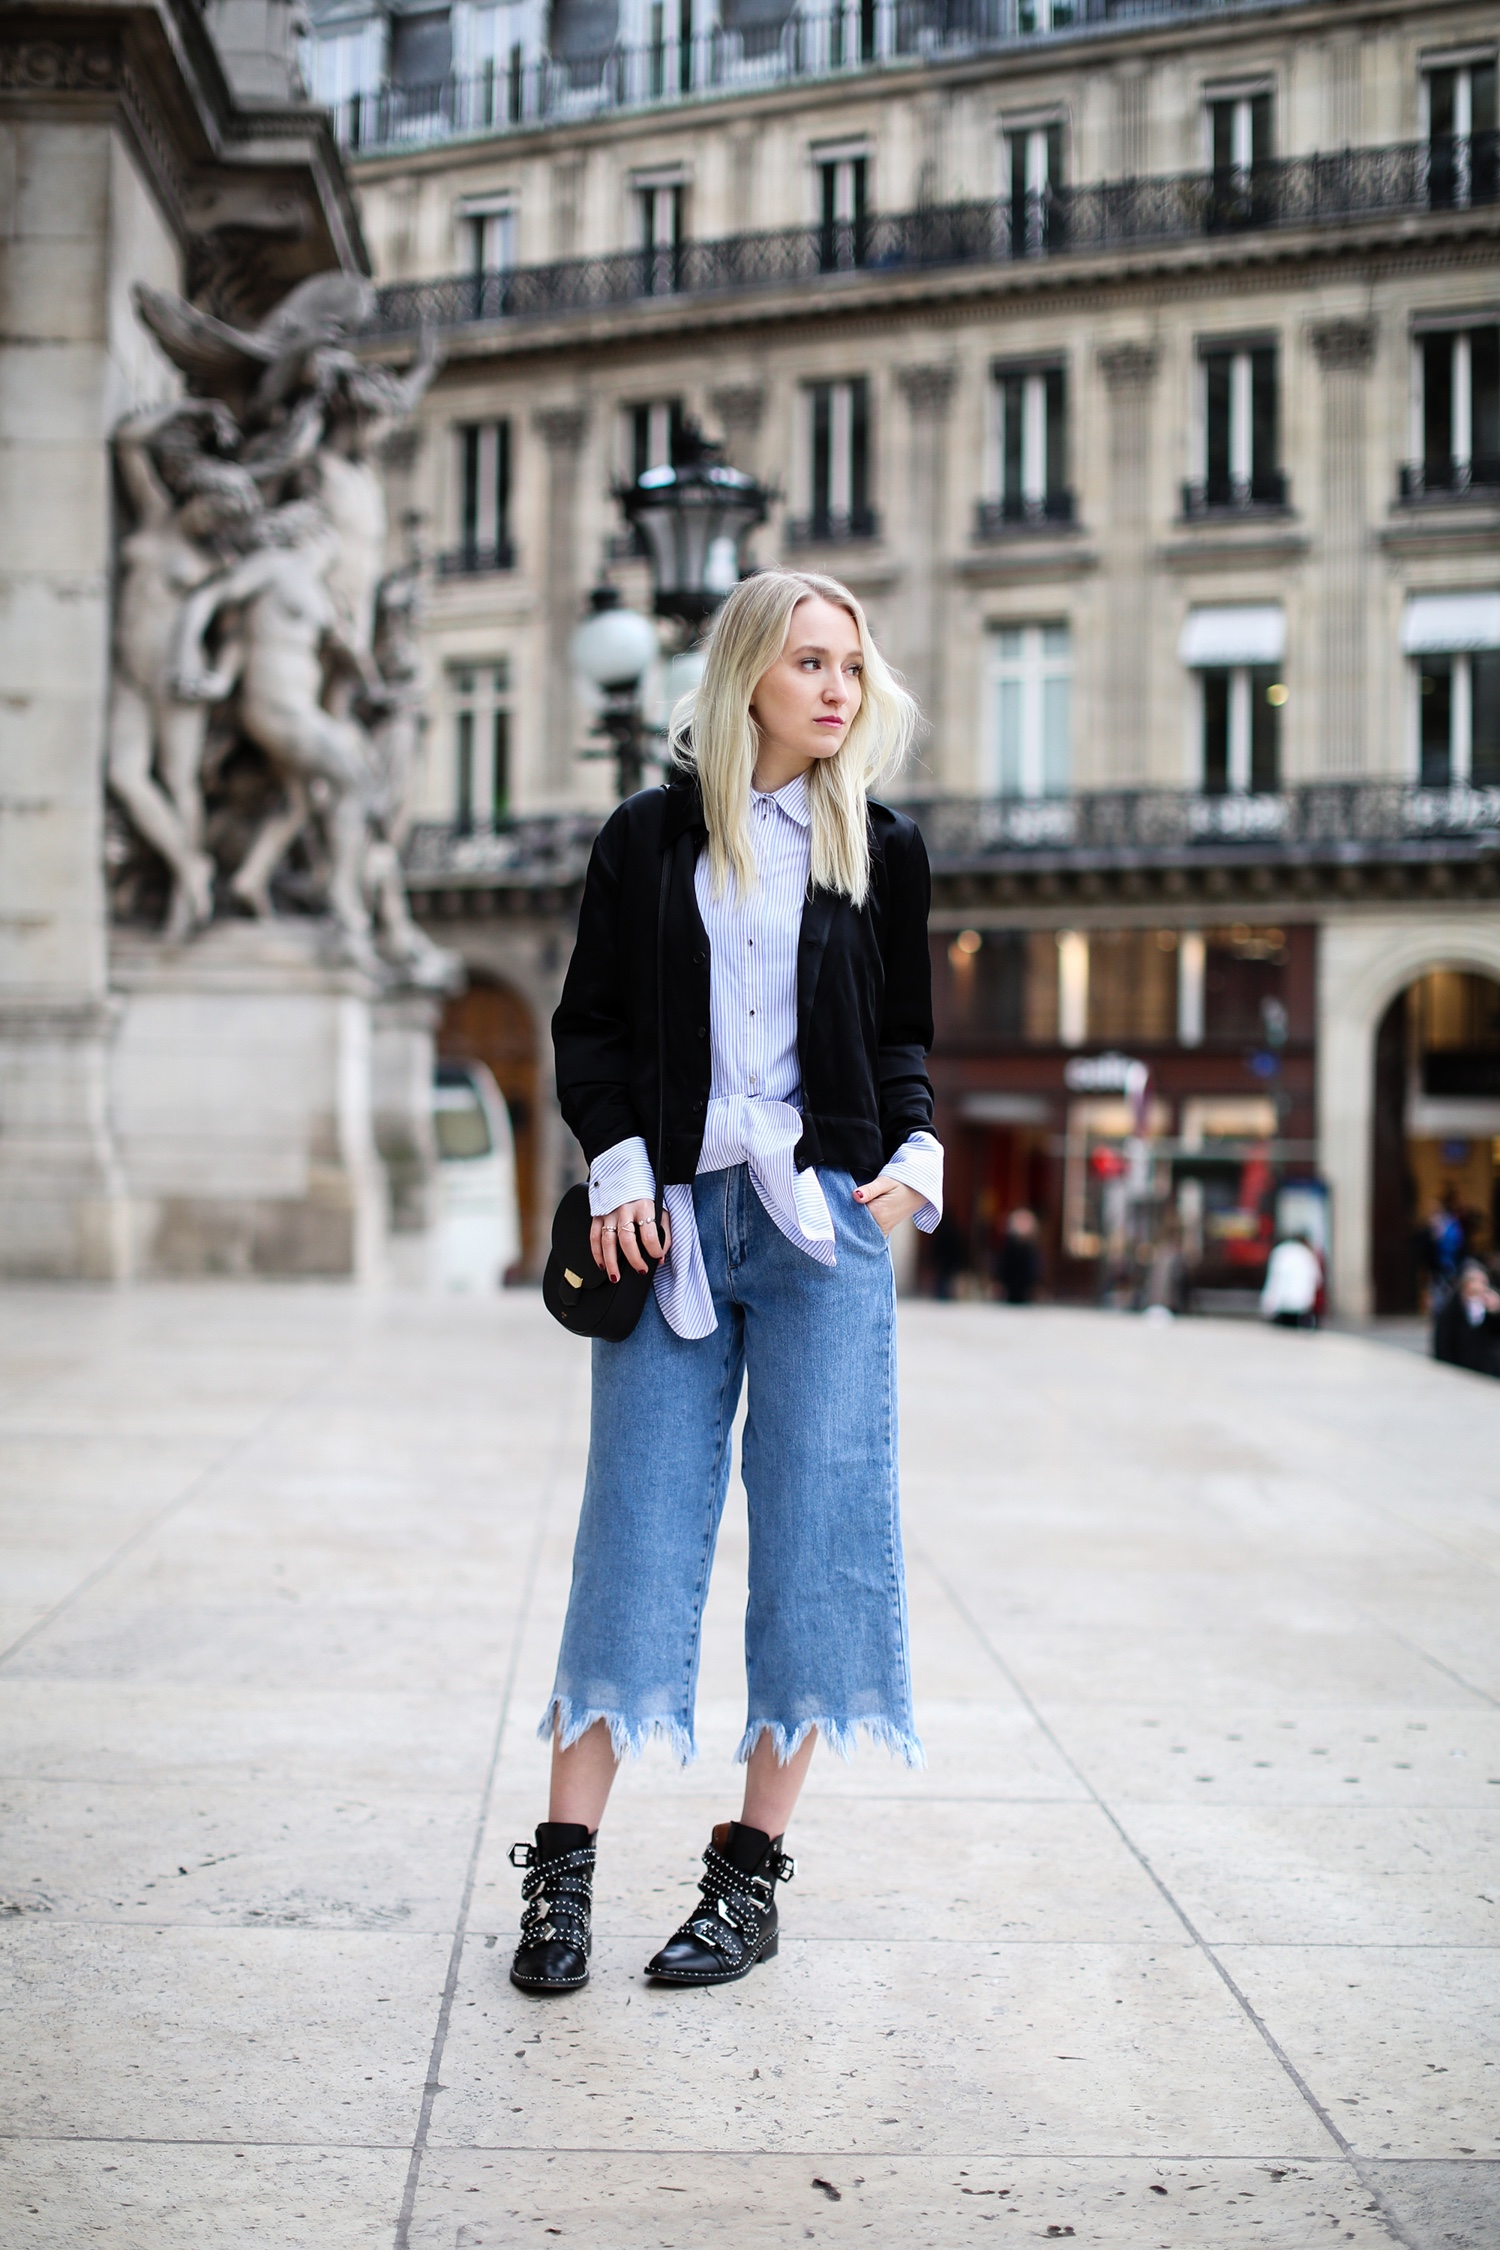 Steal Her Style: Not Your Baby Bomber Jacket by Style Shiver   Love Daily Dose